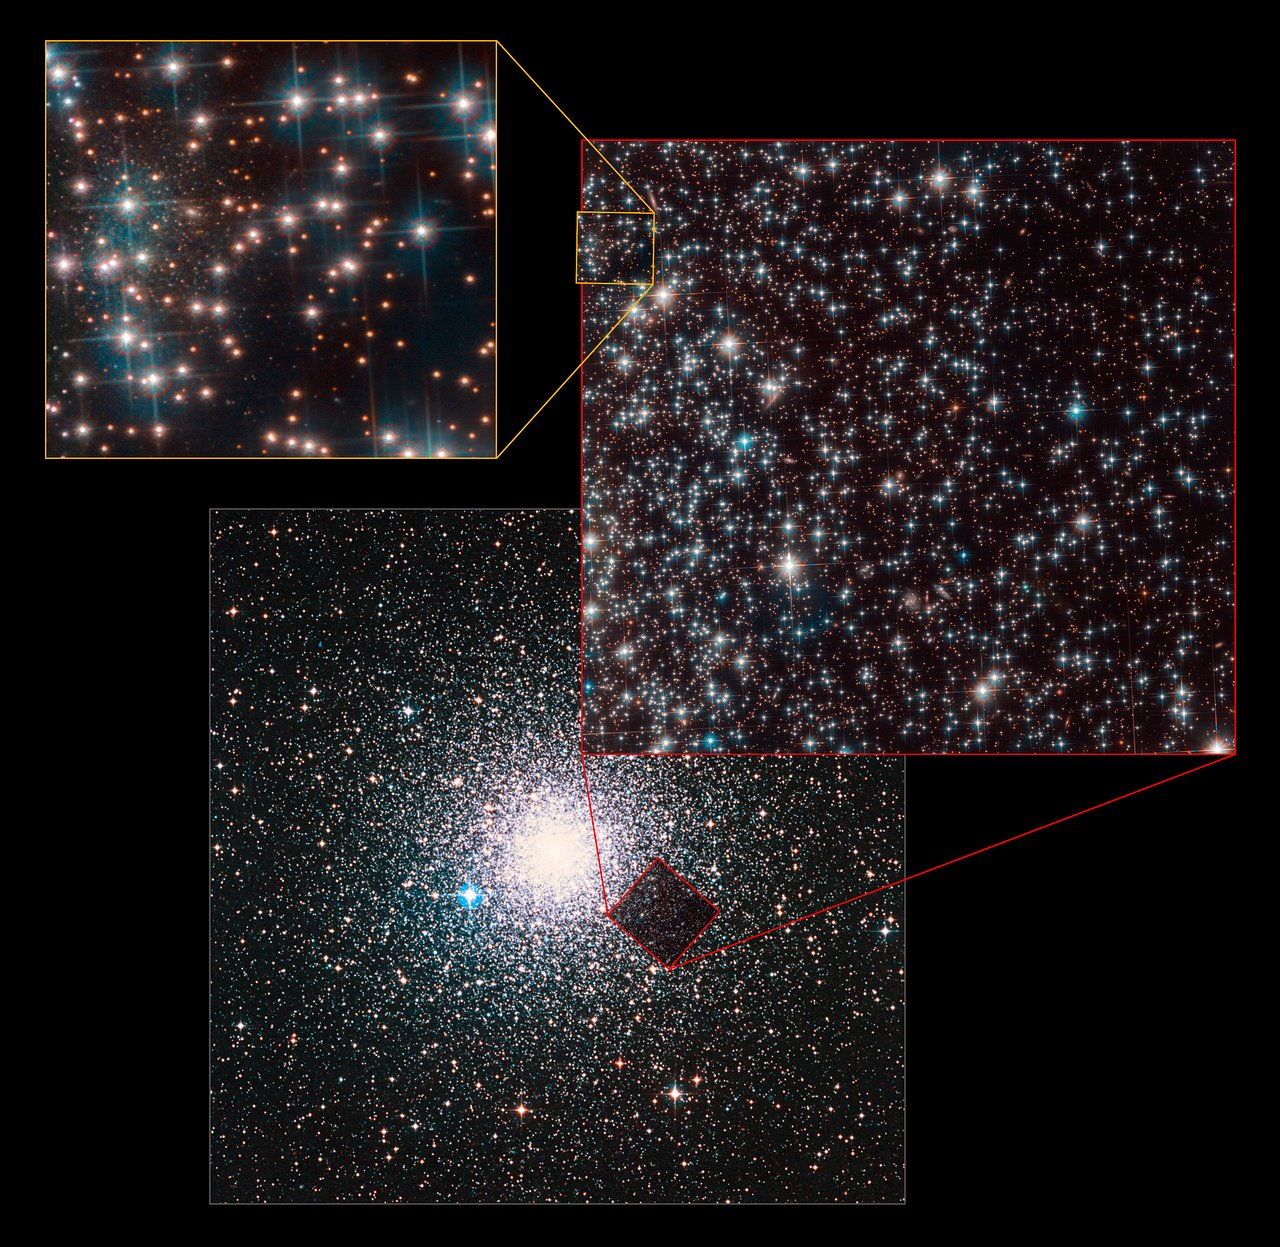 Hubble Accidentally Discovers An Ancient, Nearby Dwarf Galaxy